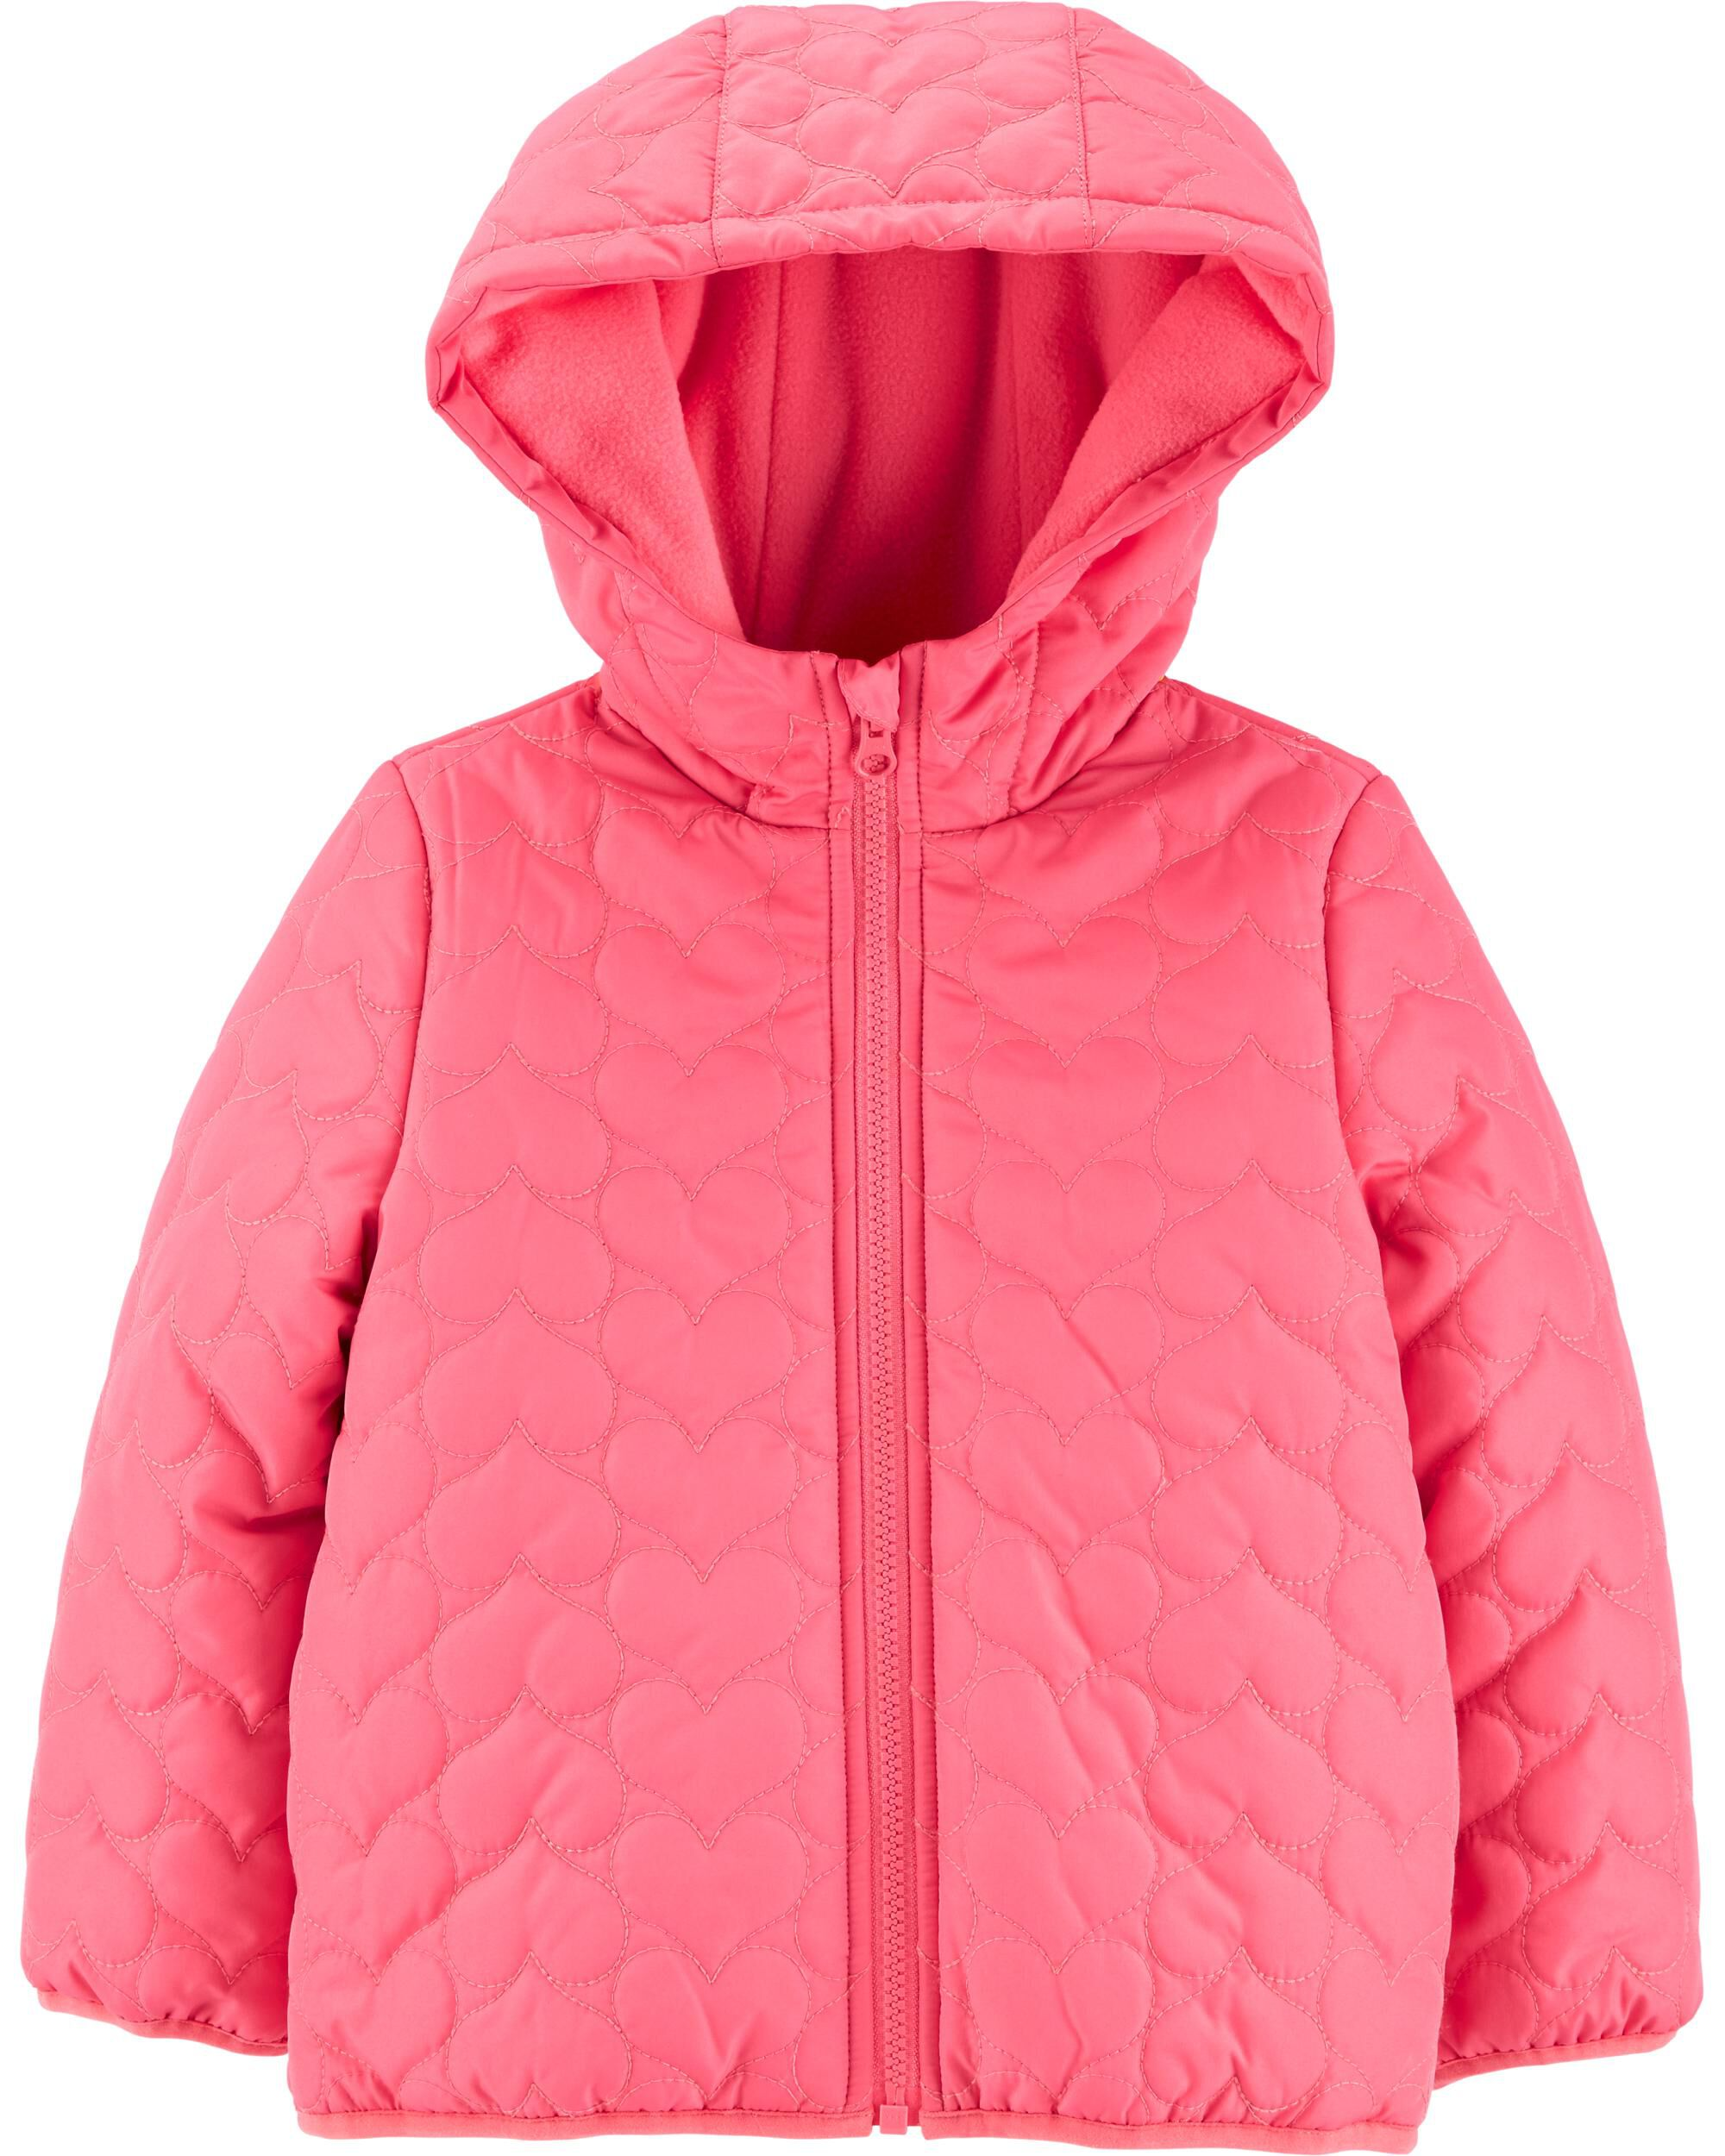 *Clearance*  Heart Quilted Puffer Jacket